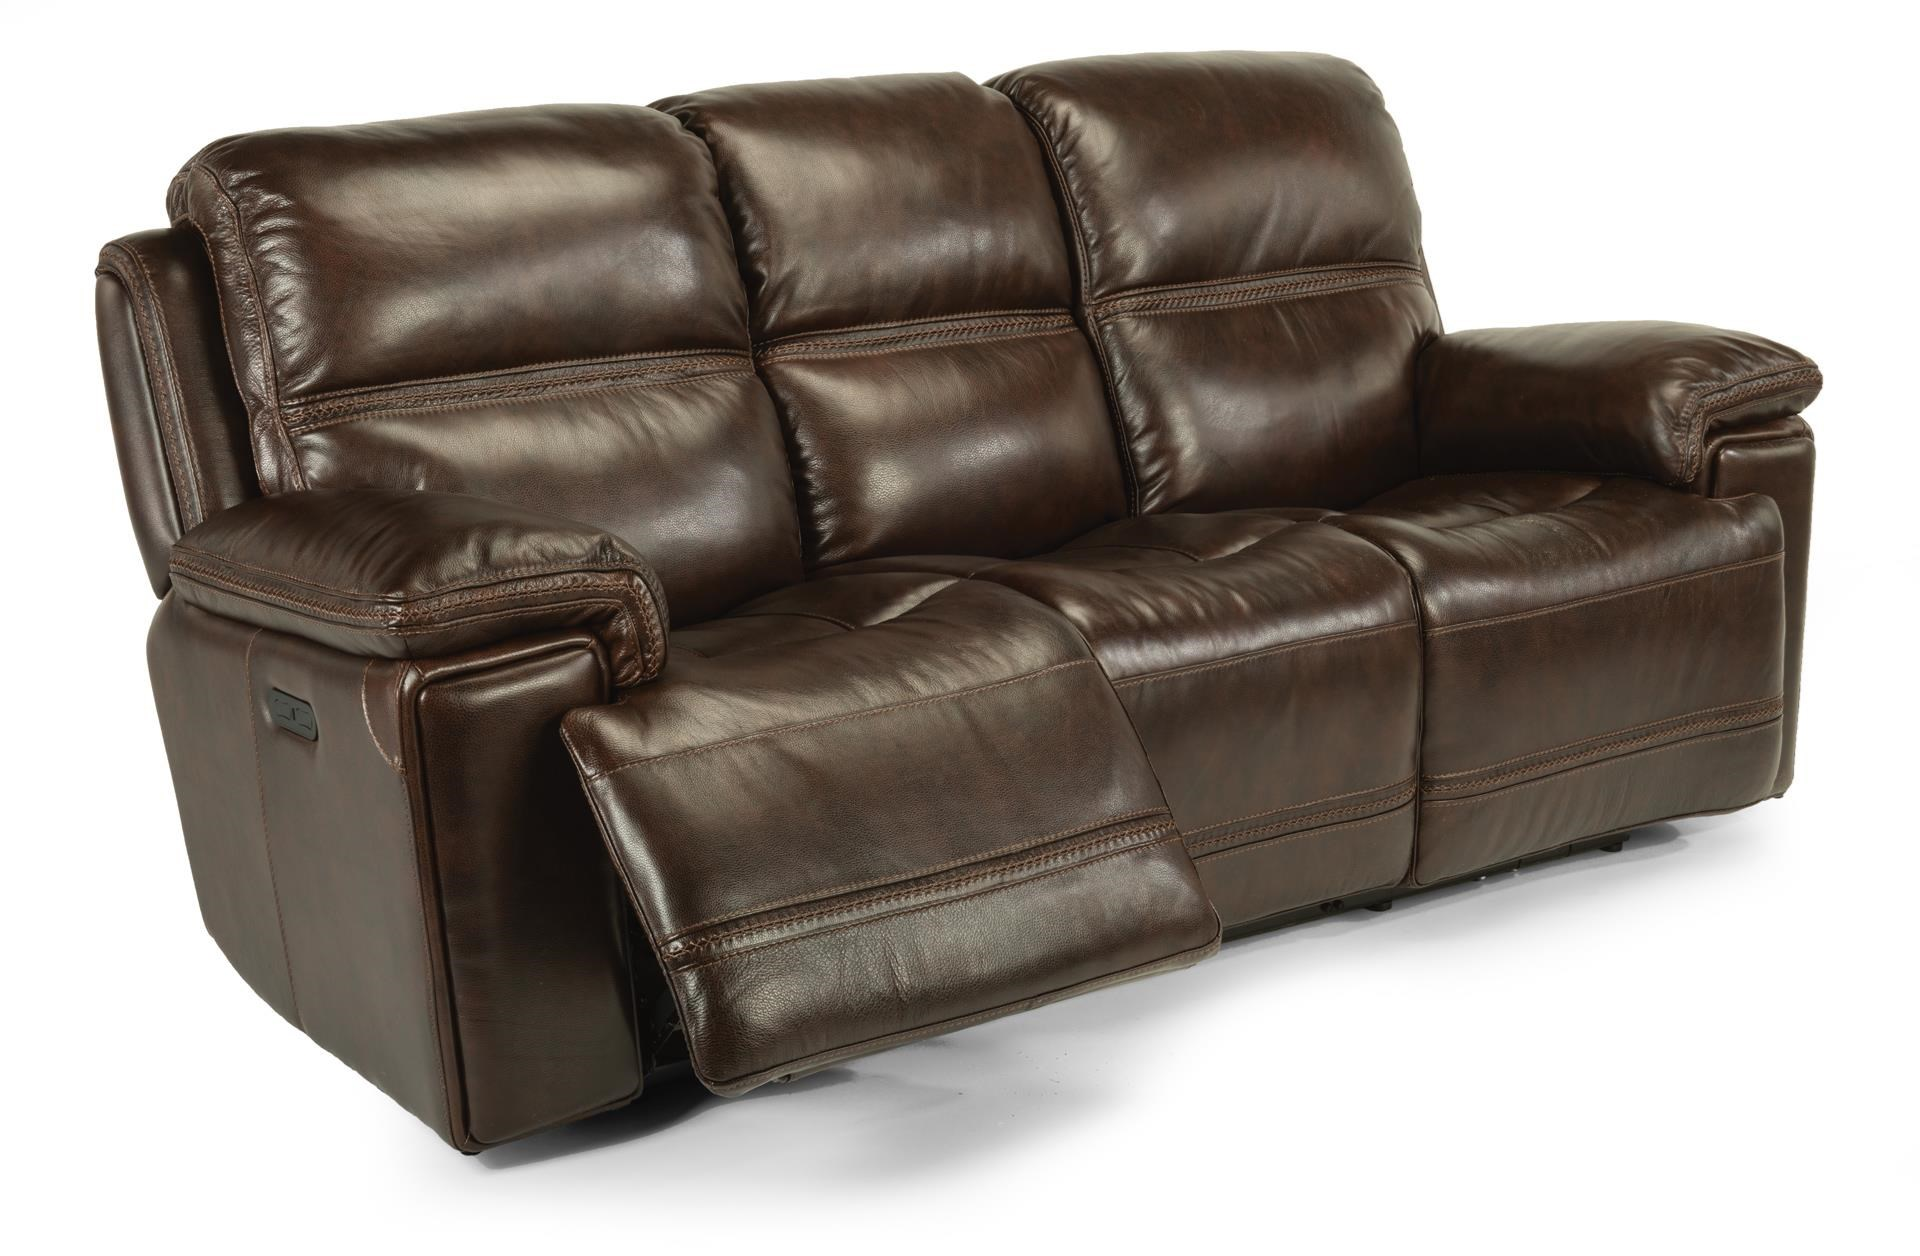 flexsteel sofas and chairs sofa covers big lots harrison 7271 31 upholstered